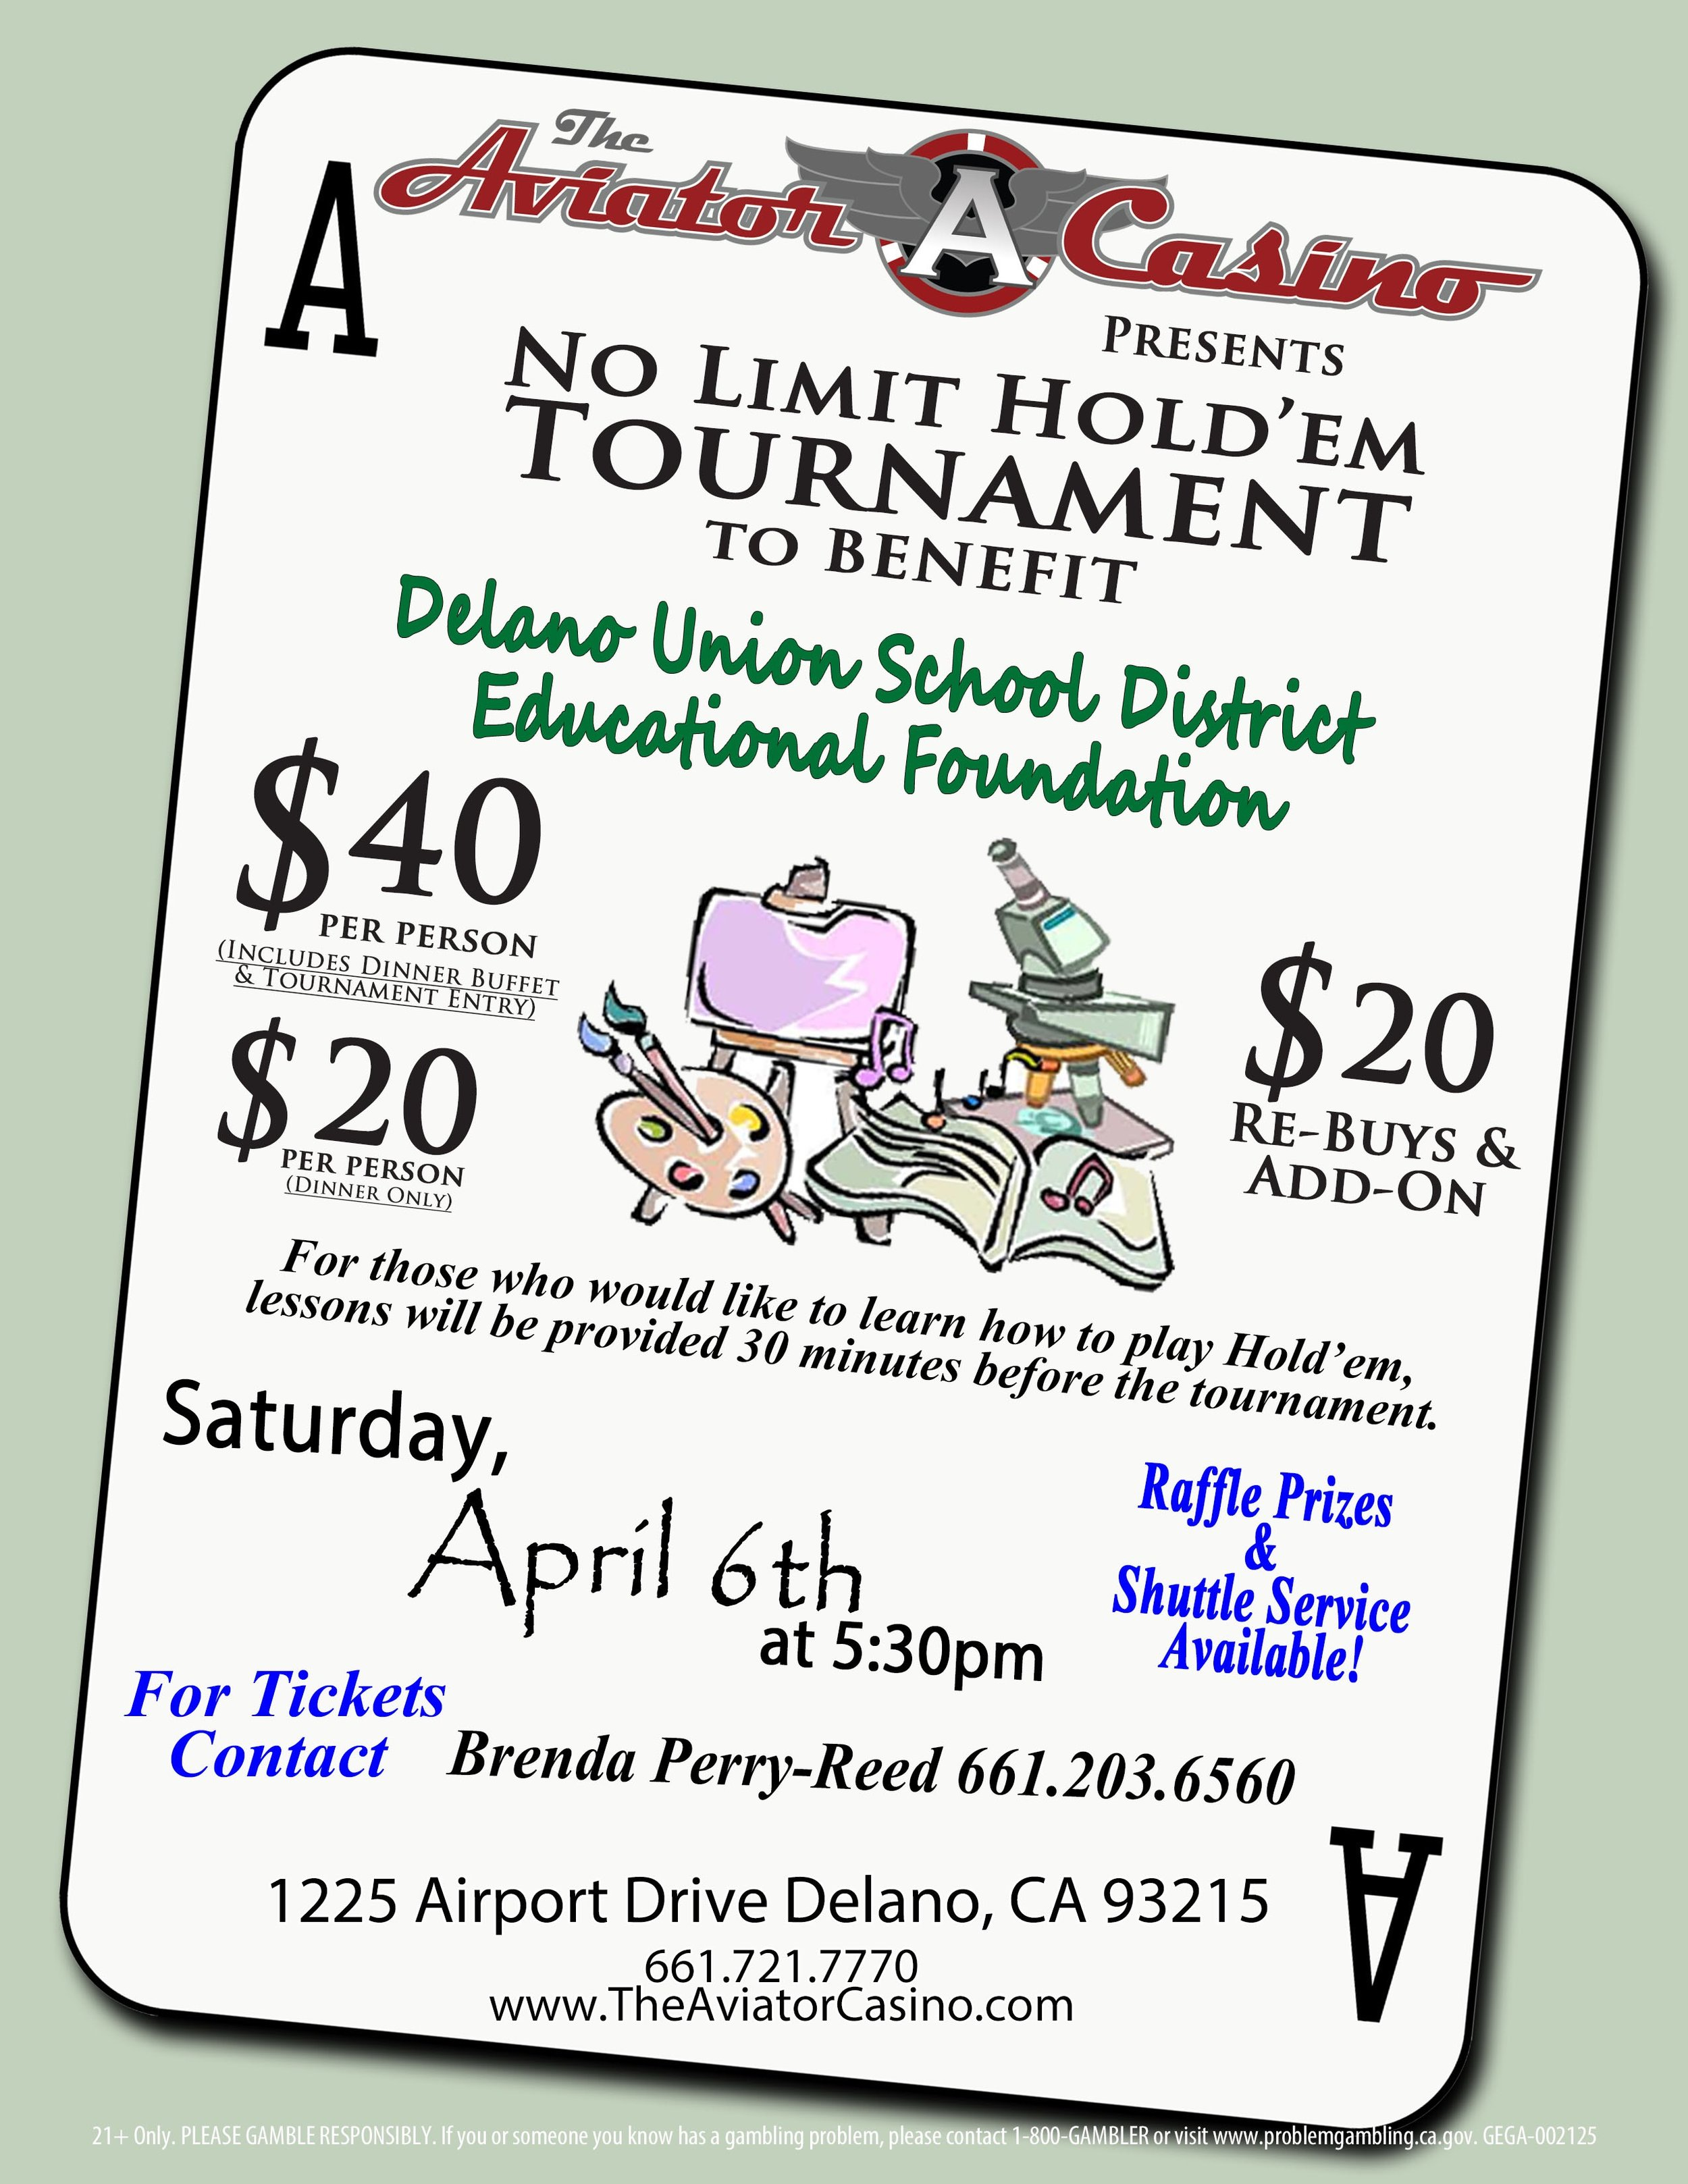 On Saturday, April 6th at 5:30pm, The Aviator Casino will be hosting a No Limit Hold 'em fundraiser tournament and dinner for the Delano Union School District Educational Foundation. Tickets to enter the tournament are $40 and they include a tritip & chicken dinner. For those not interested in playing in the tournament, there are dinner-only tickets which are $20. There will also be a raffle that attendees can participate in! To purchase tickets, please contact Brenda Perry-Reed at 661-203-6560..